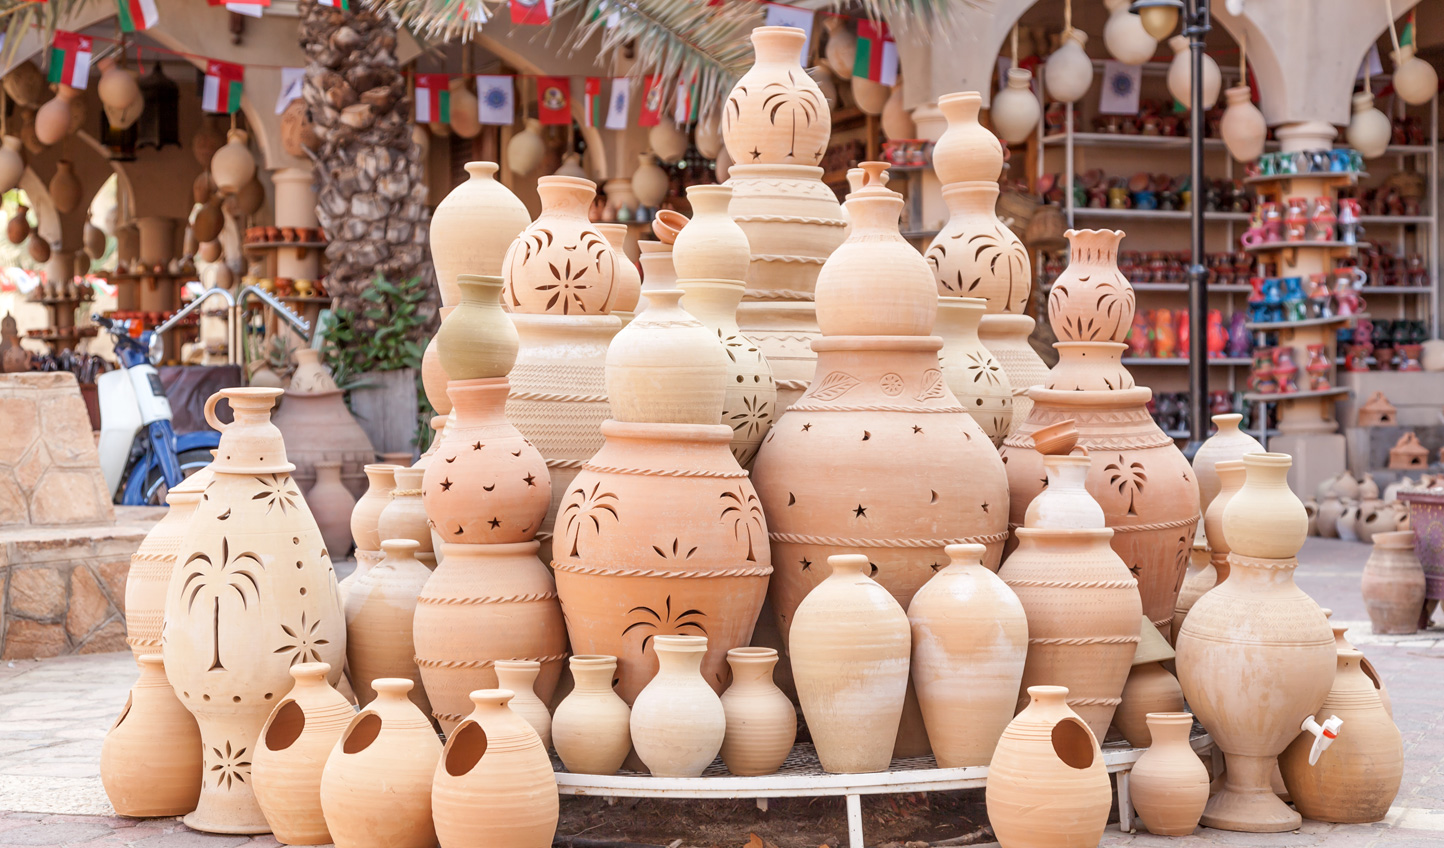 Make your way through the souks, perhaps finding the perfect souvenir to bring home